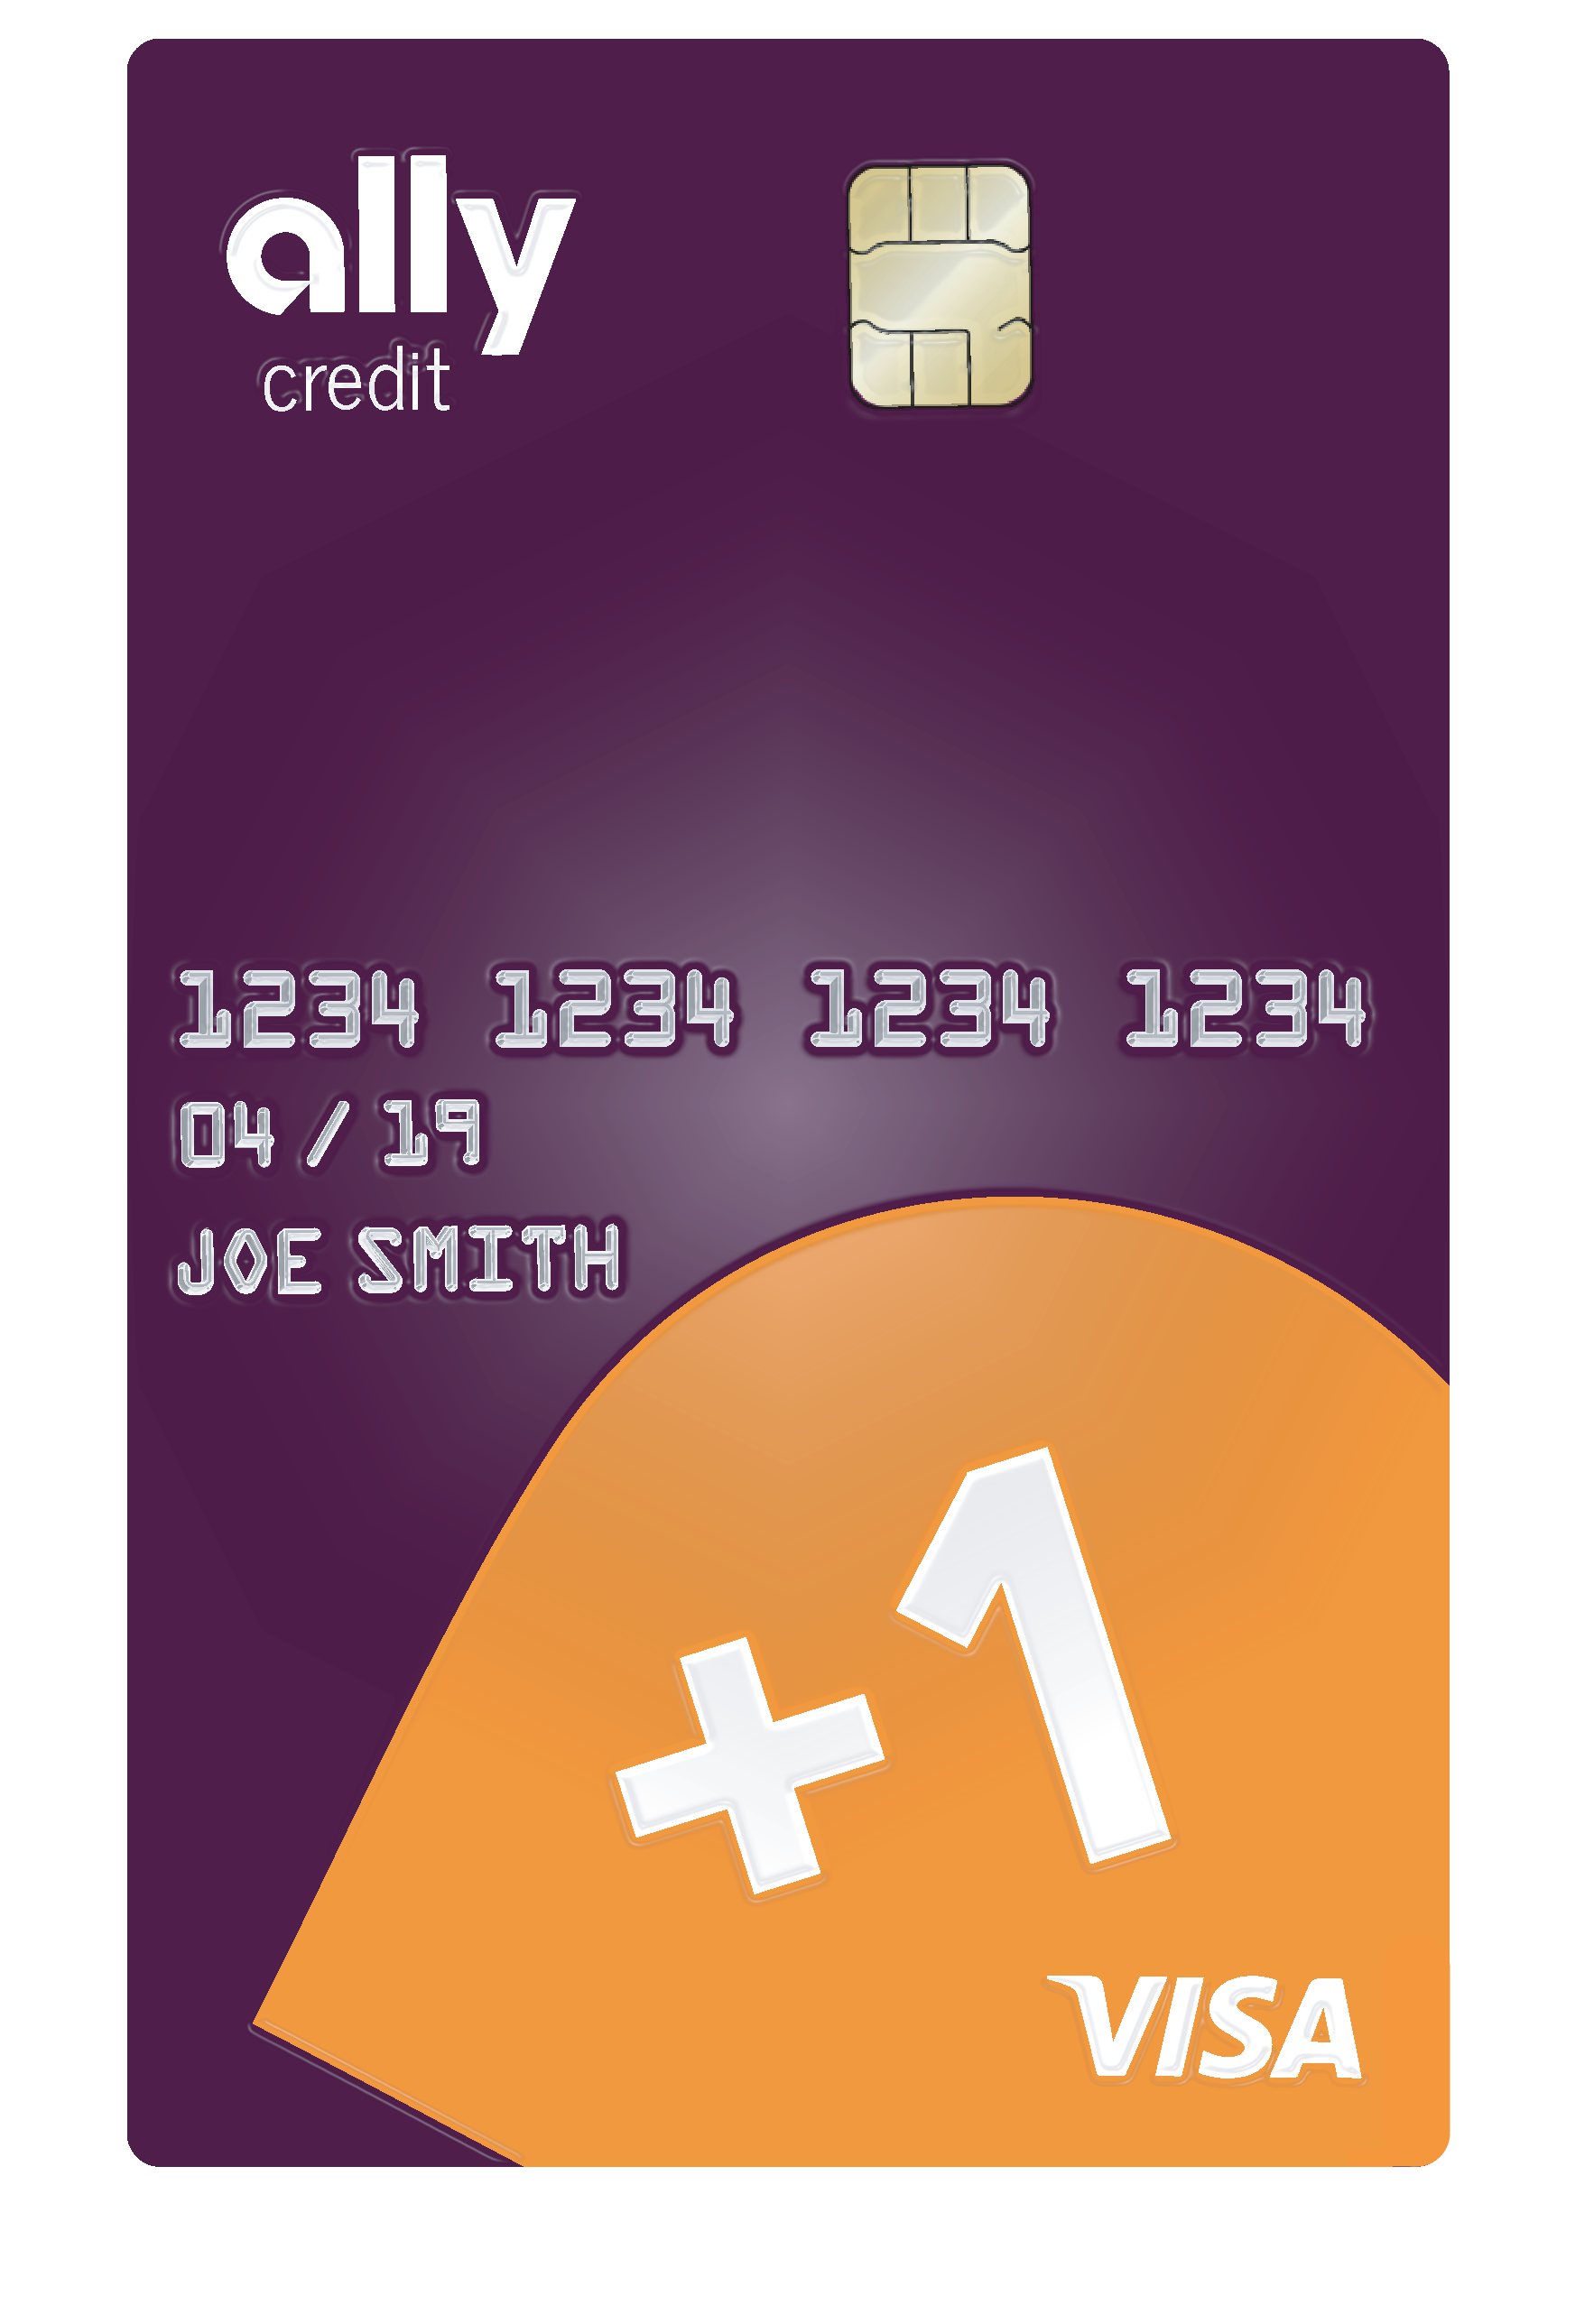 credit_card_ally_single-05.png